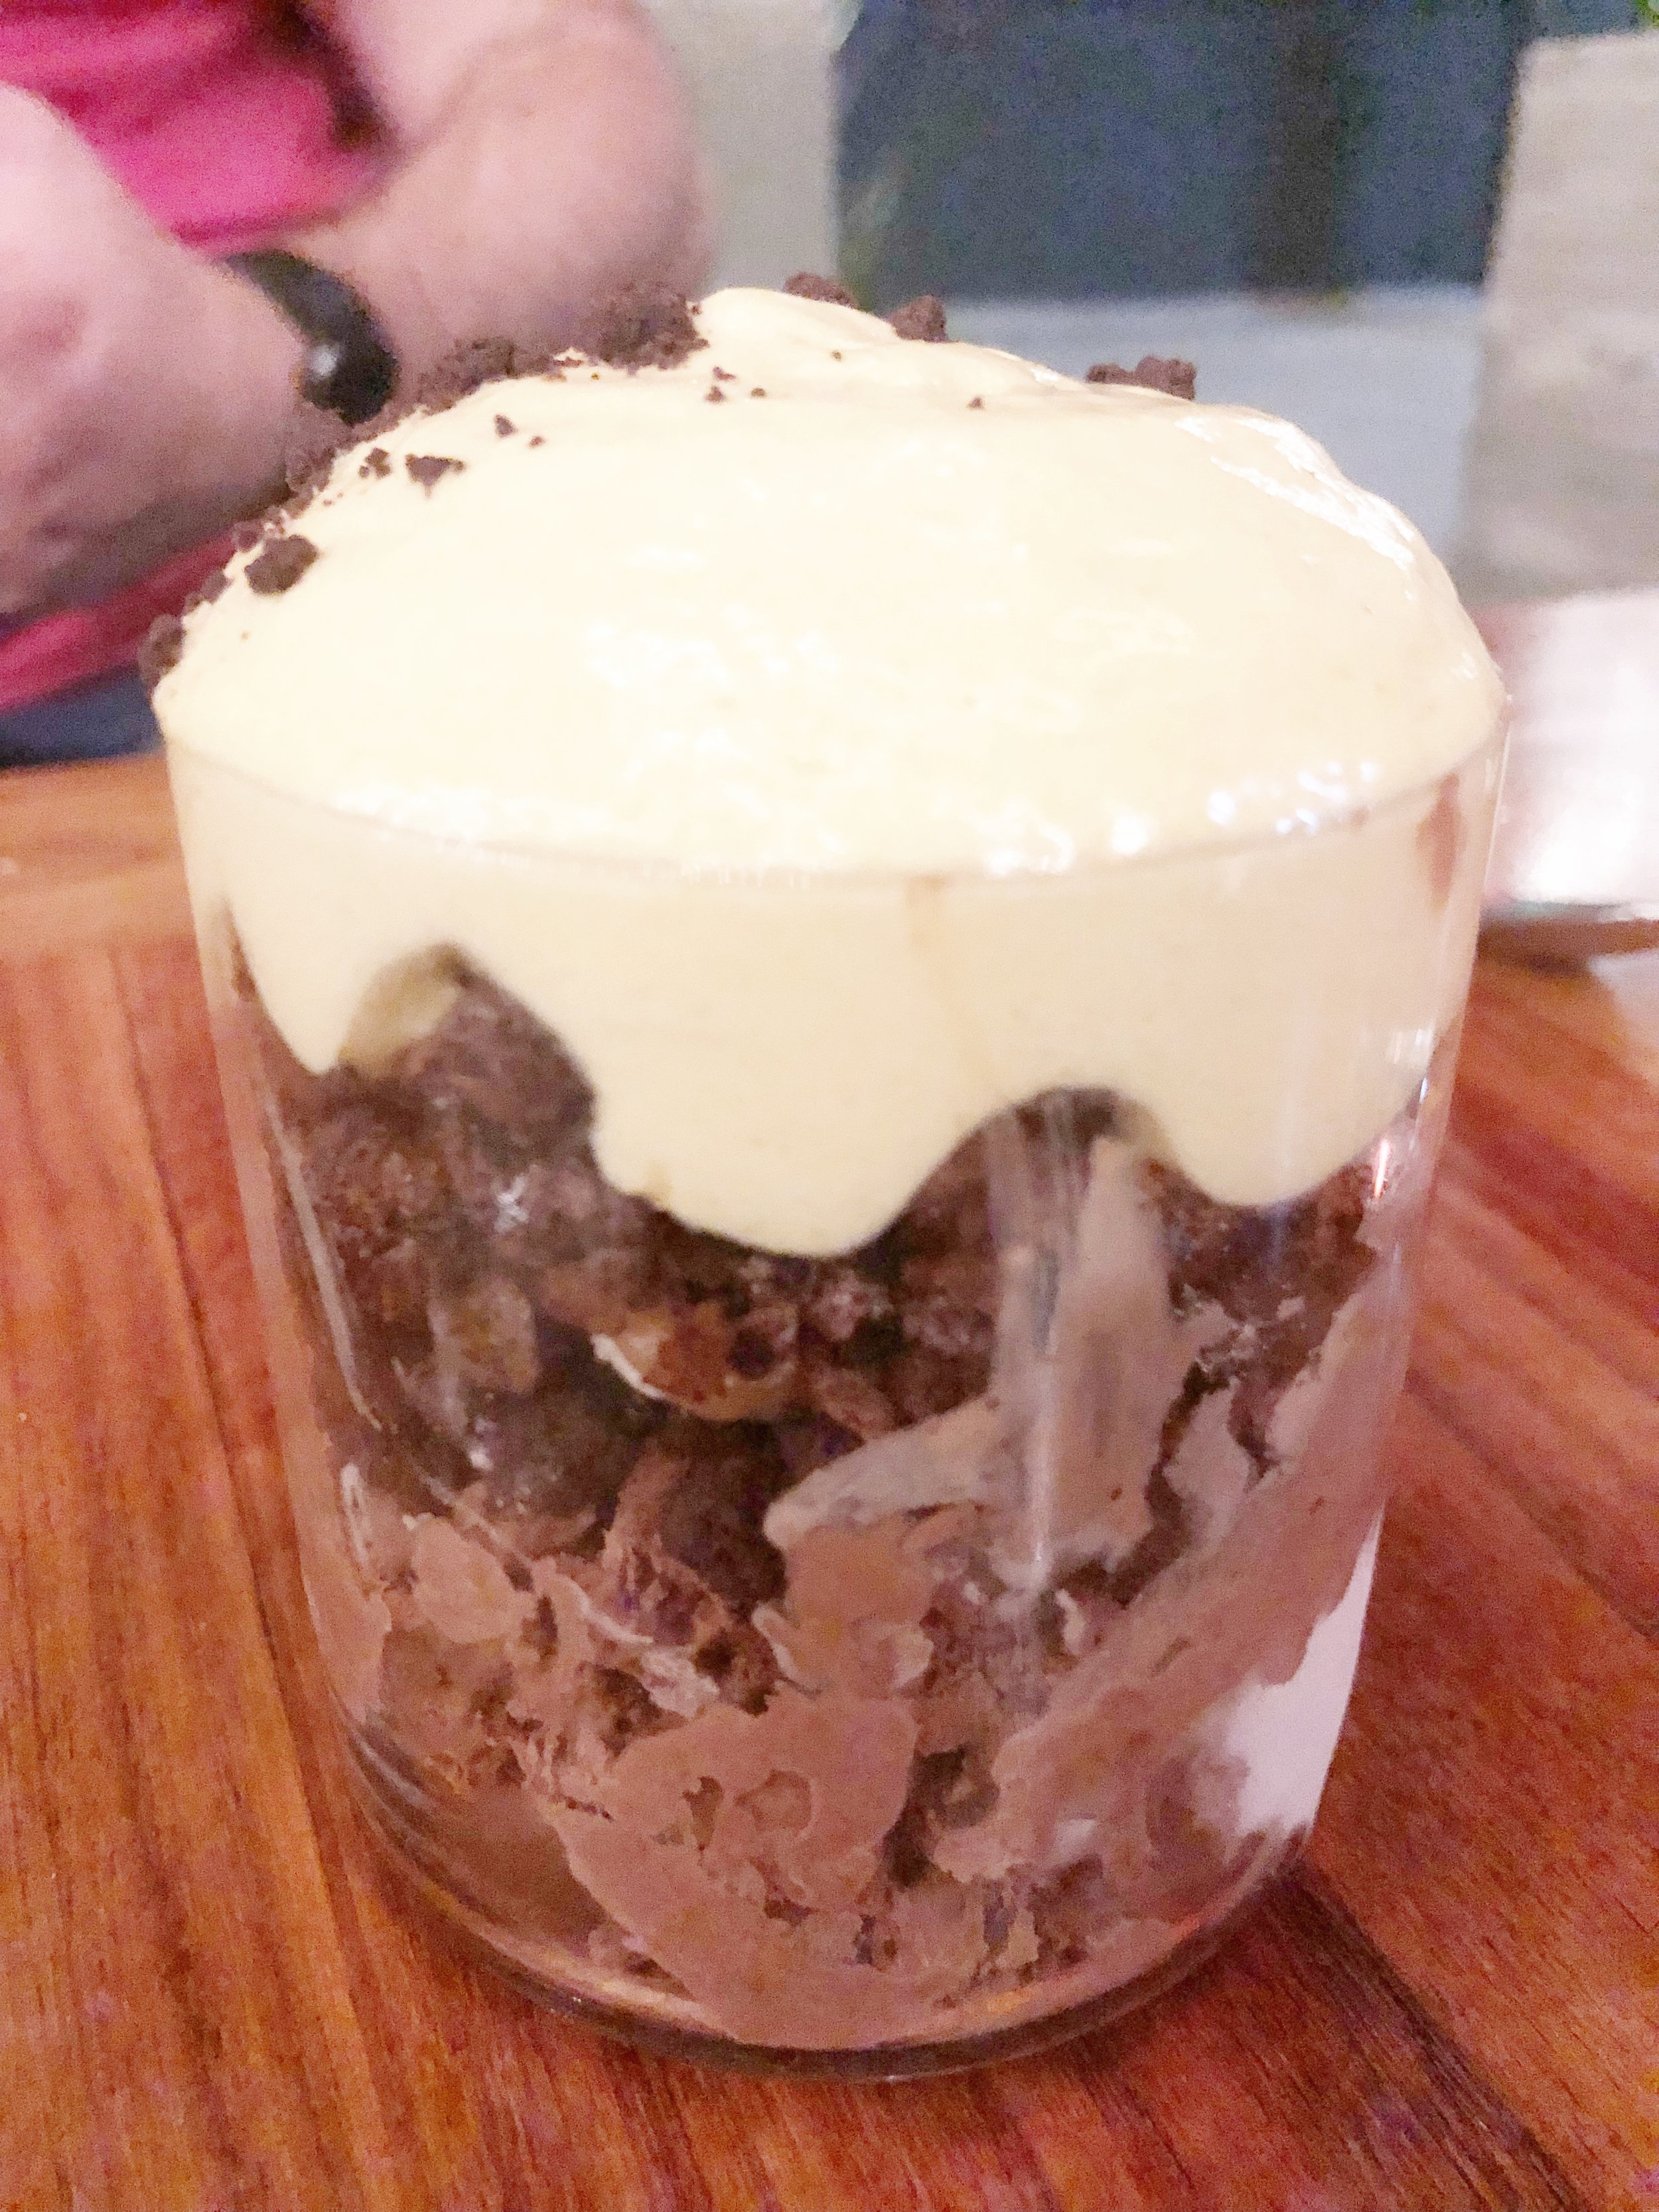 Banana/Chocolate Pudding - This thing had more layers than Pete Davidson/Ariana Grande's relationship. Chocolate pudding, banana mouse, chocolate cake bits. If we weren't extremely full (and hadn't already ordered another dessert), we probably would have had two of these.